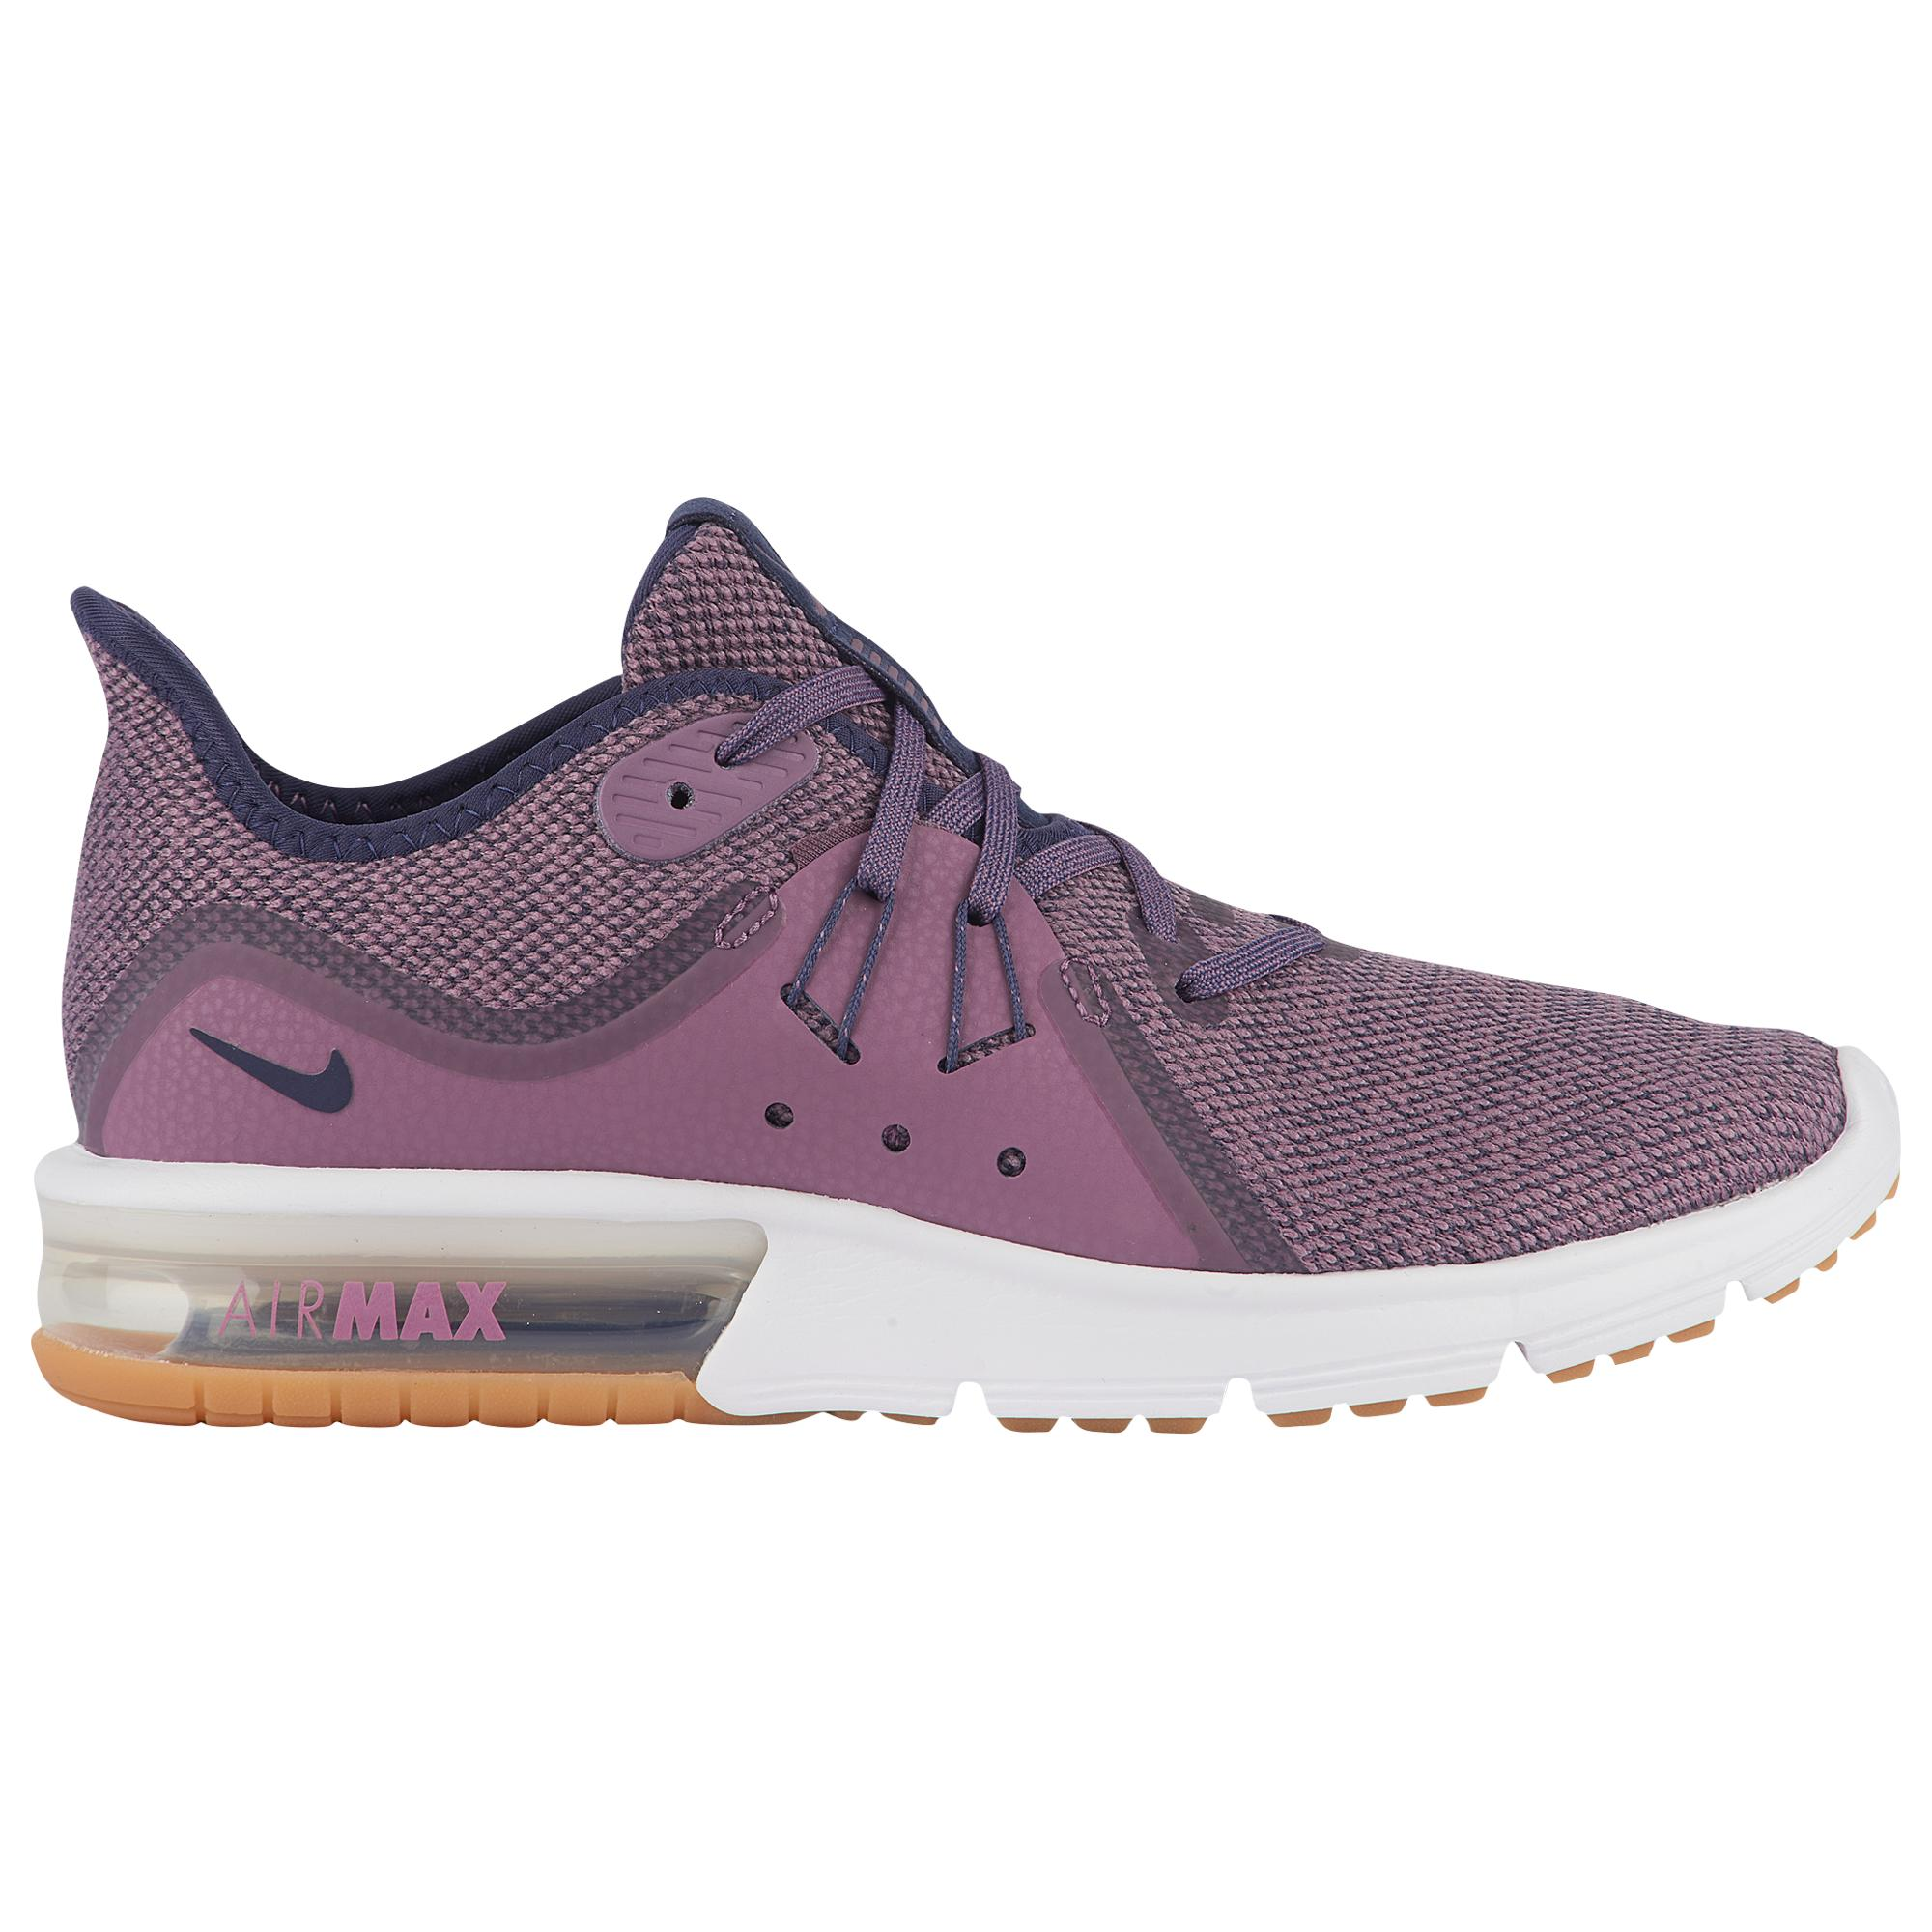 30b563c10e Nike Air Max Sequent 3 in Purple - Save 32% - Lyst